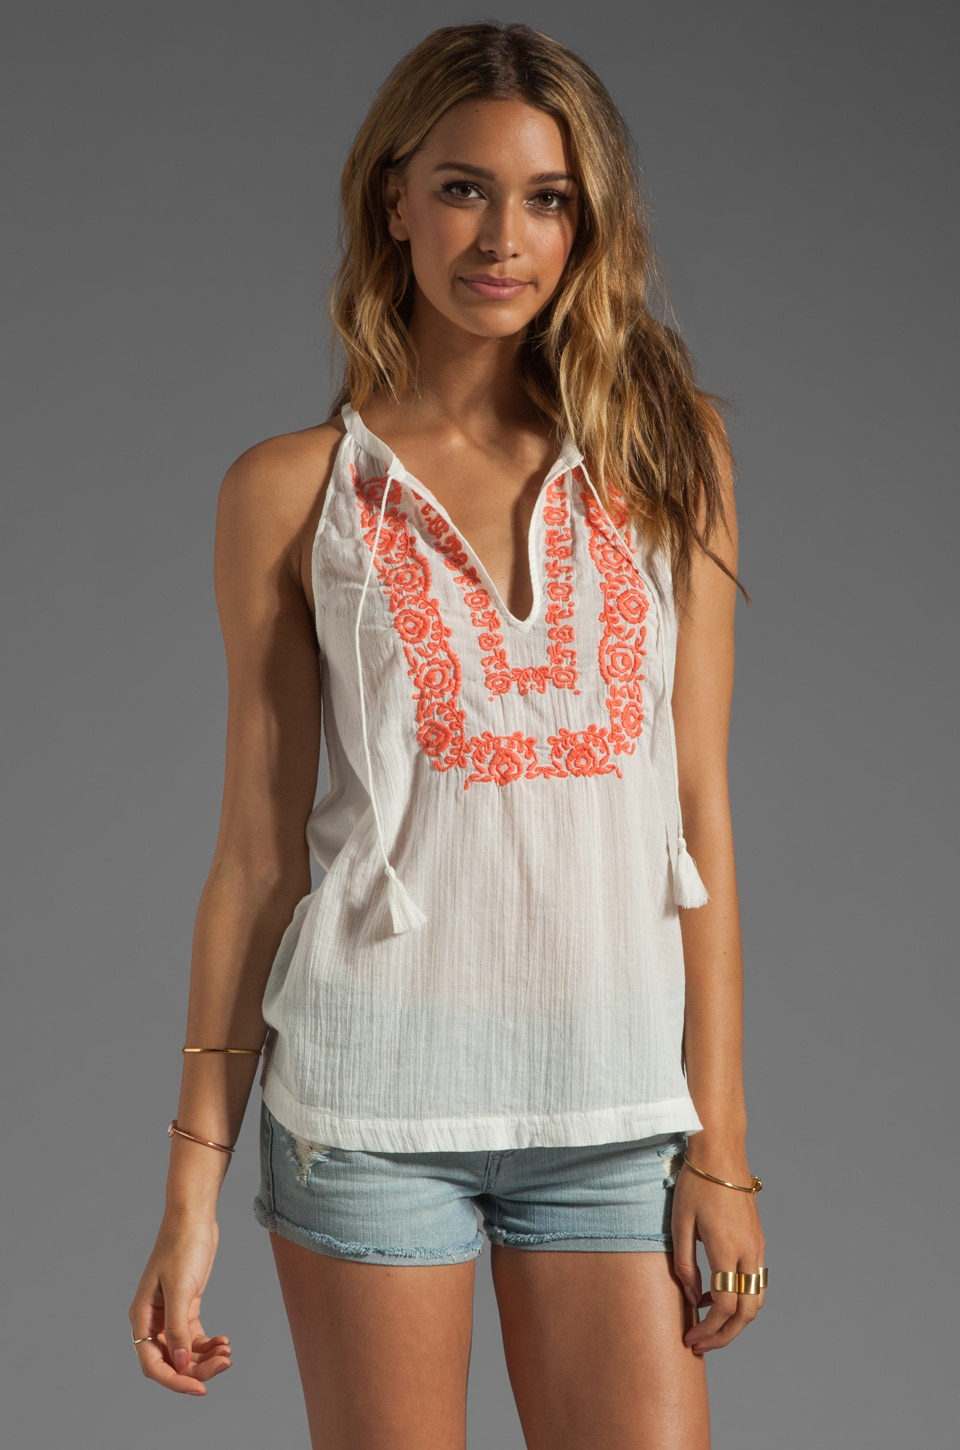 Joie Chutney Embroidery Tank in Porcelain/Hot Coral